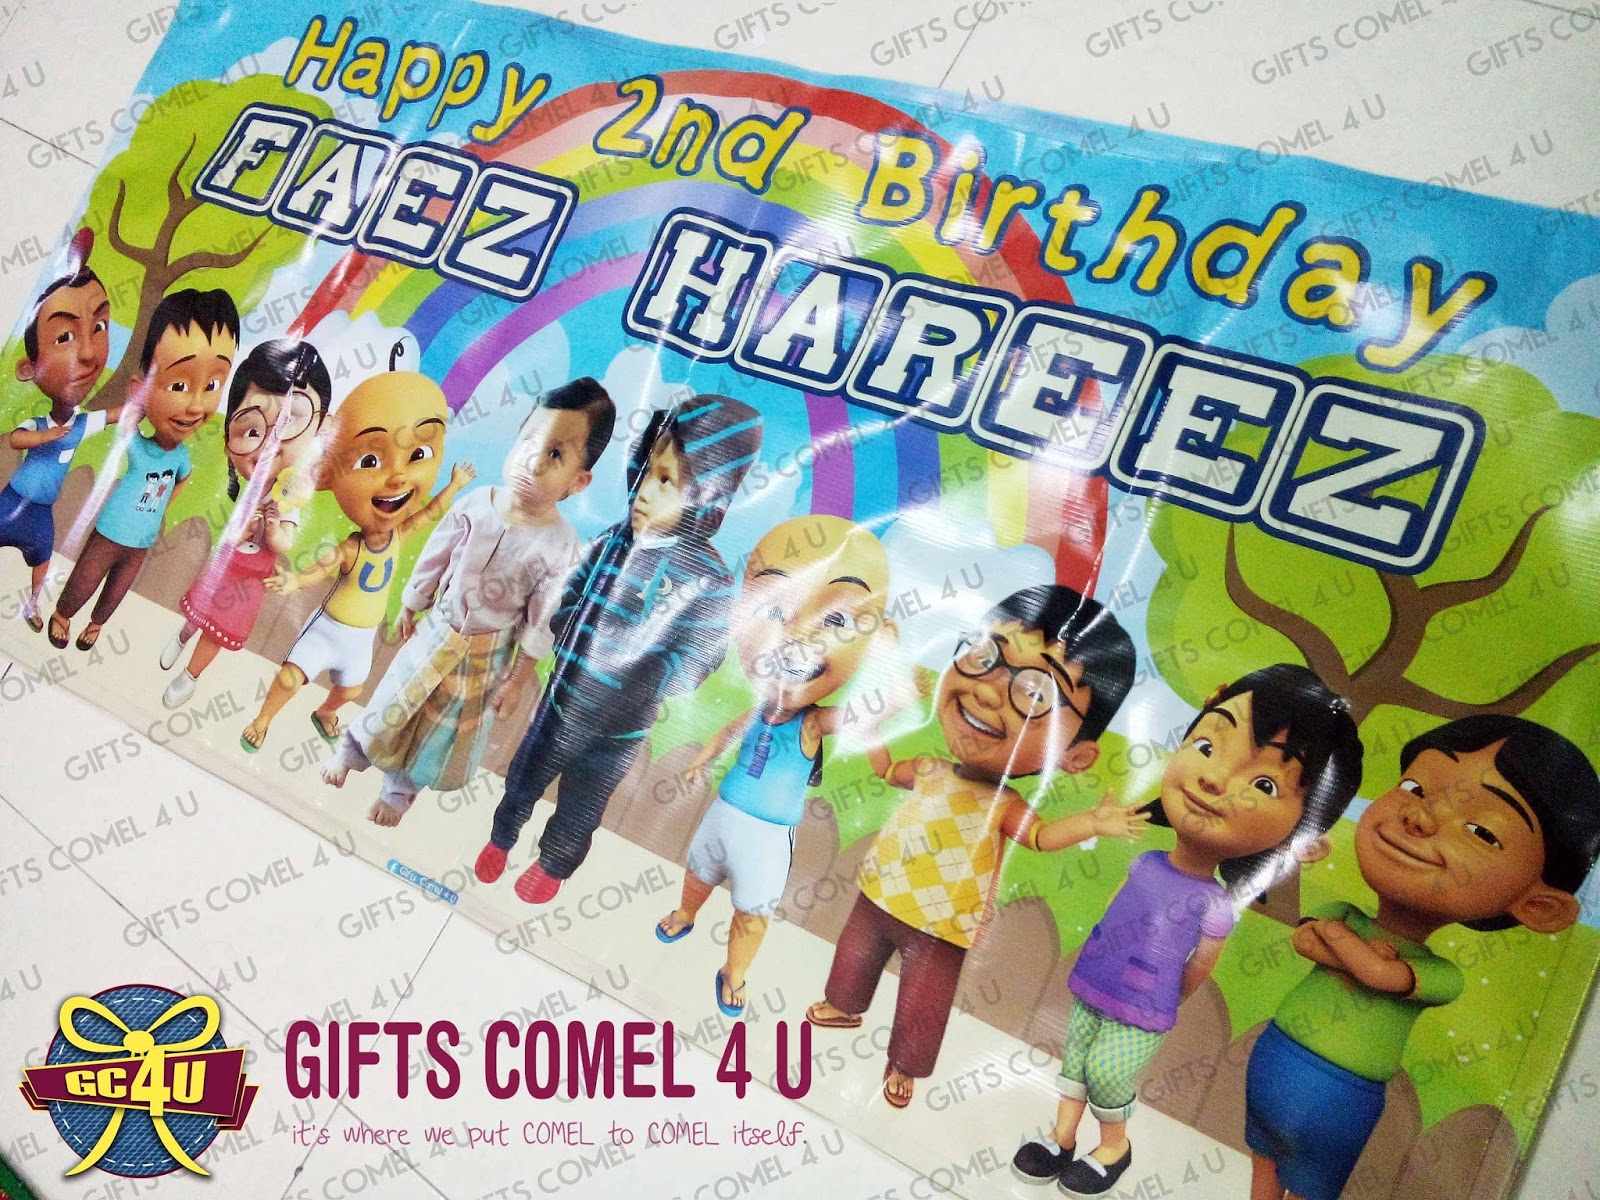 Gifts comel 4 u ordered by norziany mohd noor upin ipin from gc4u to norziany mohd noor 23rd nov 2015 delivery type self collect theme upin ipin friends theme bannerbackdrop 2ft x 4ft stopboris Image collections